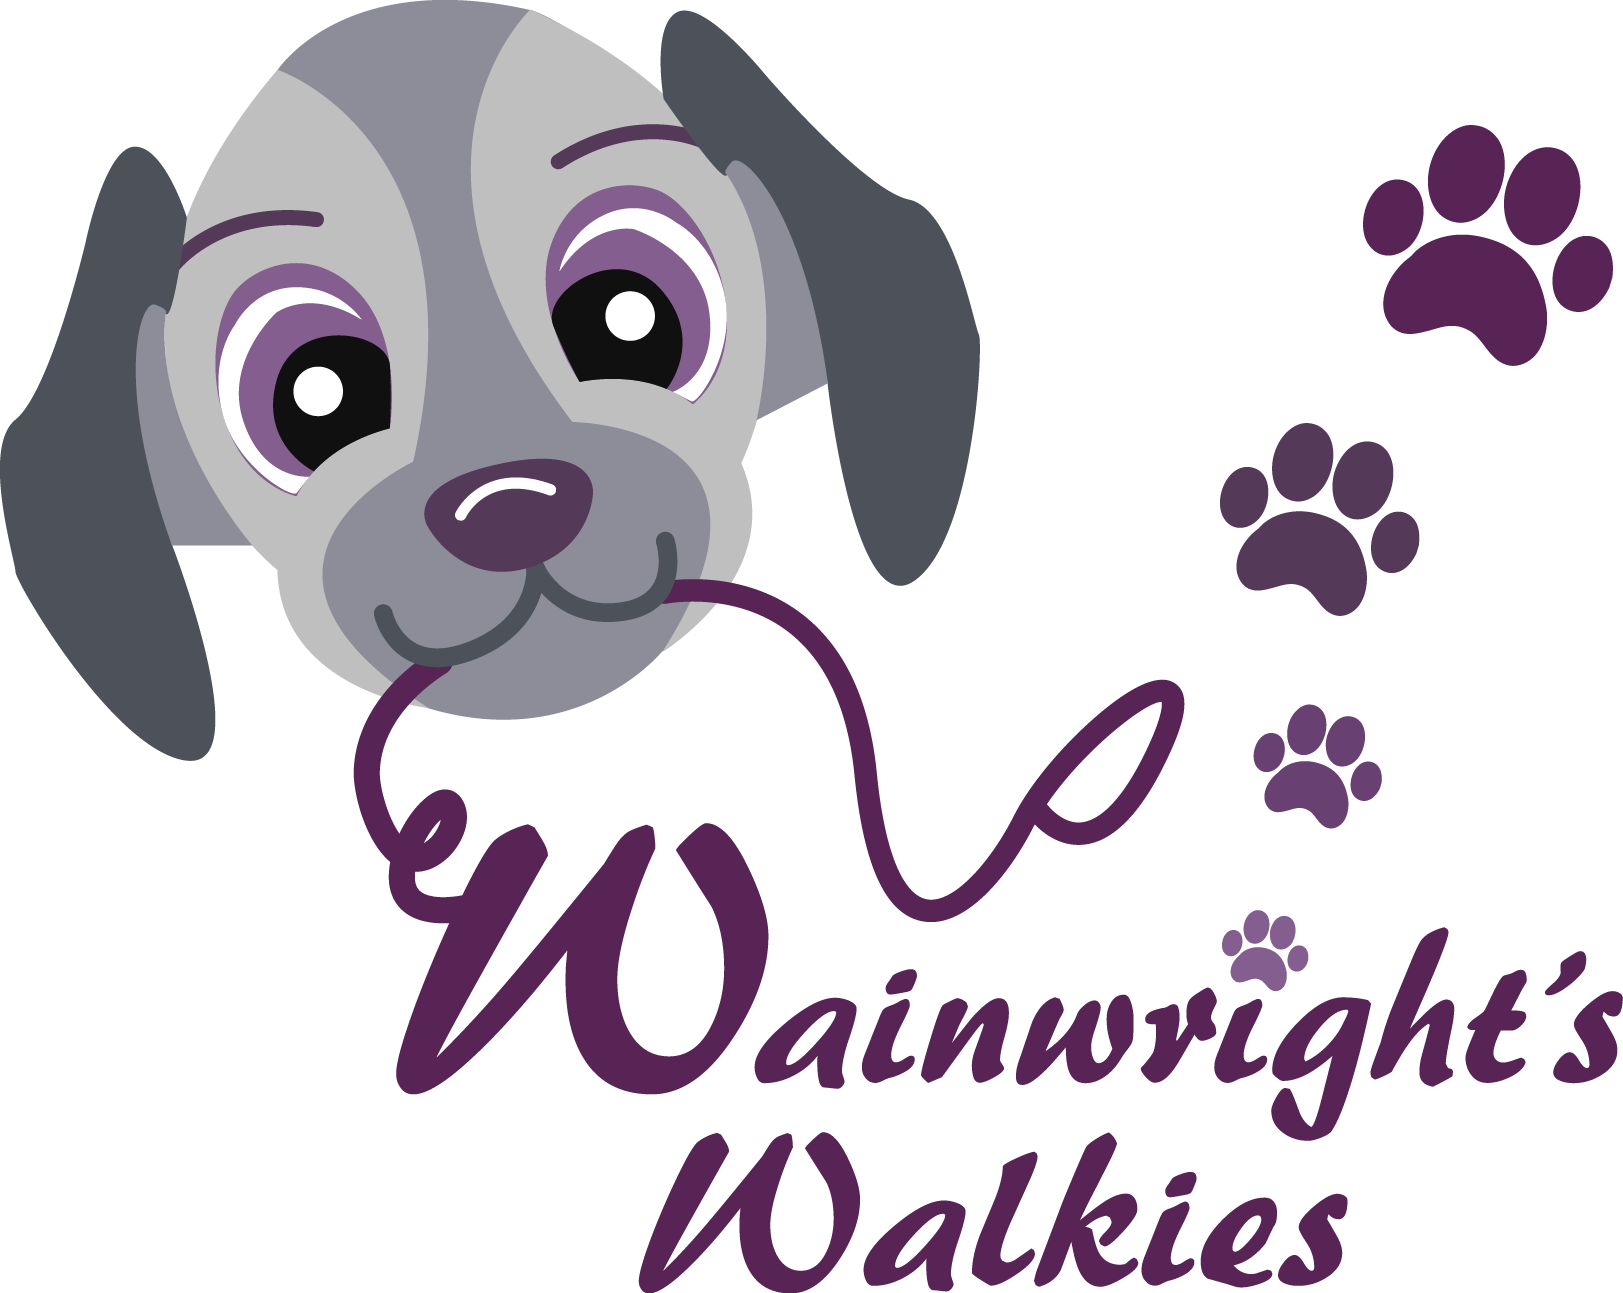 Wainwright's Walkies